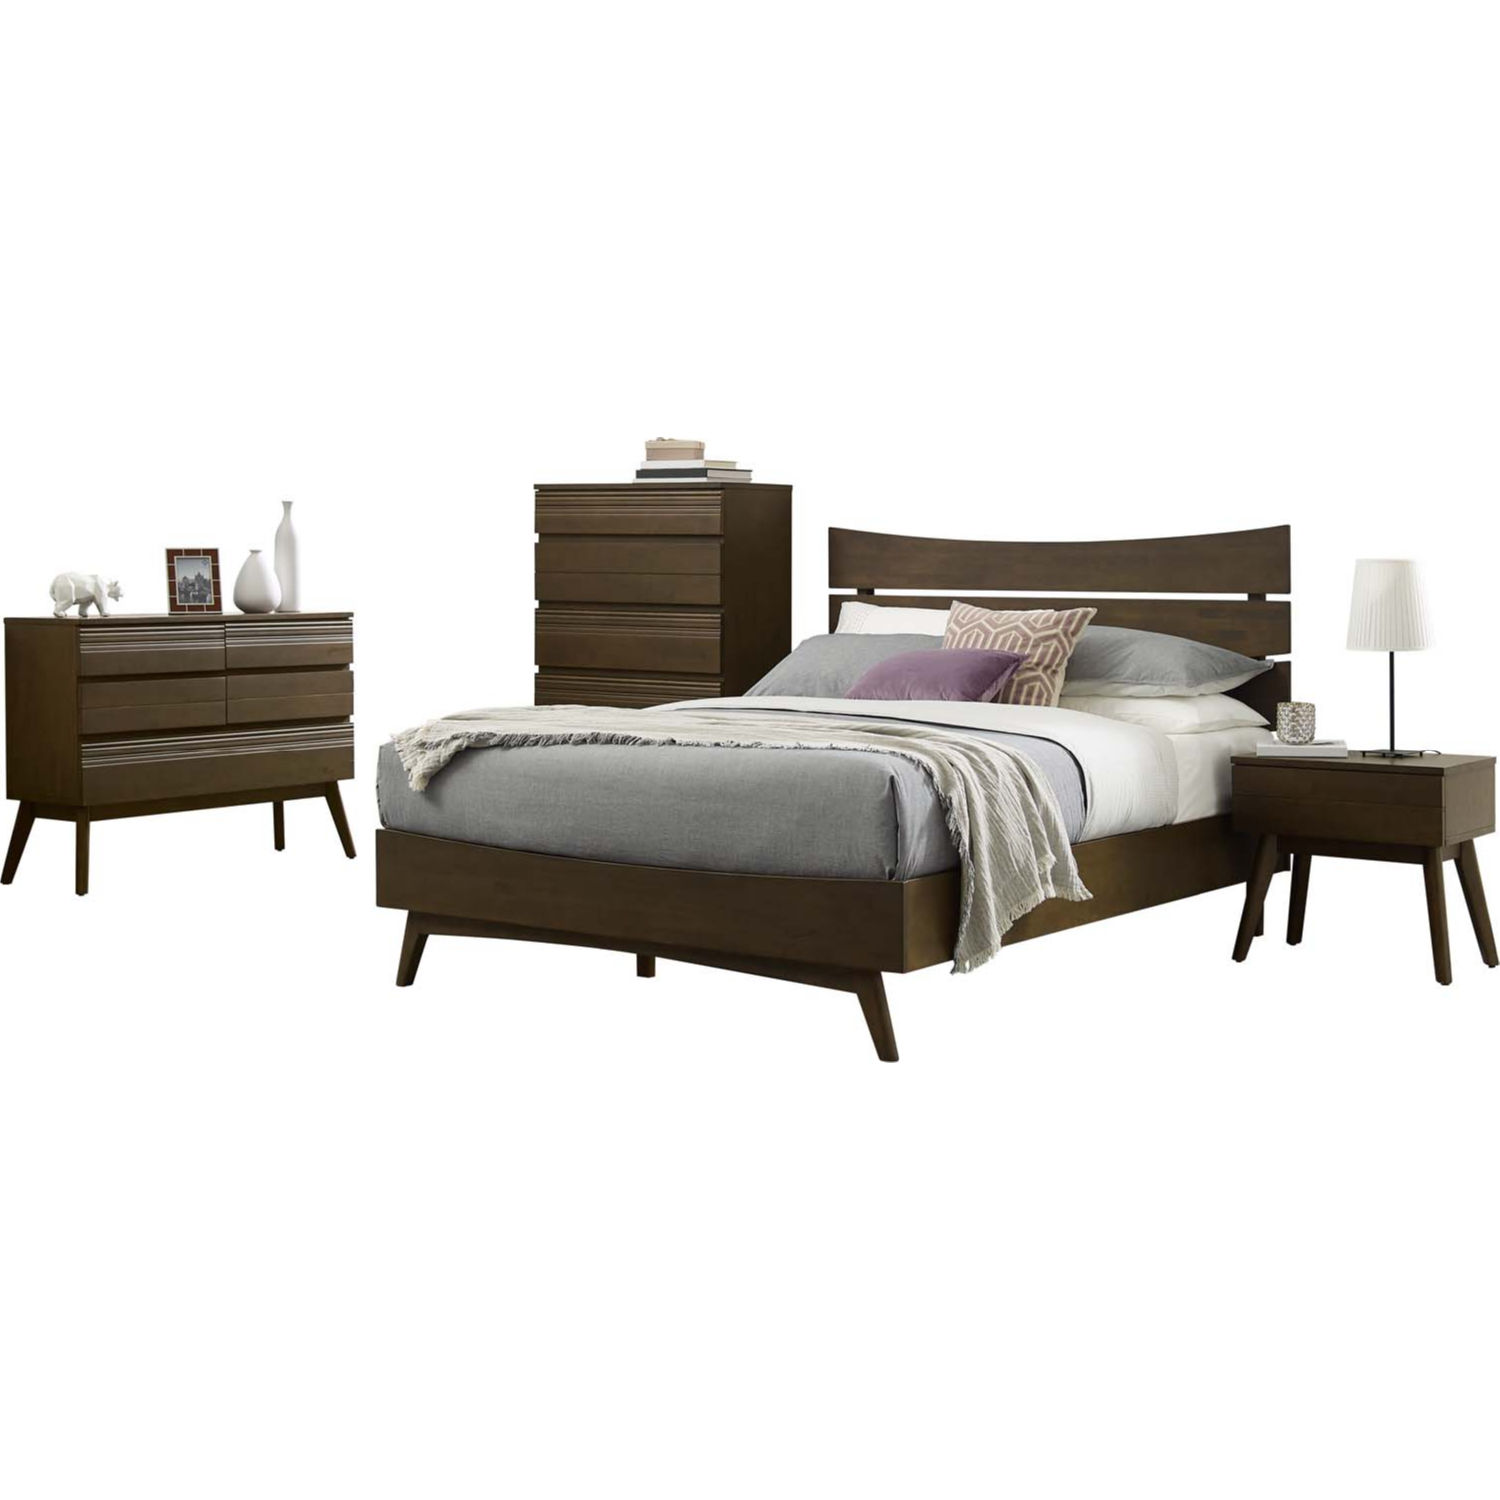 Everly 5 Piece Queen Bedroom Set in Walnut Finish by Modway